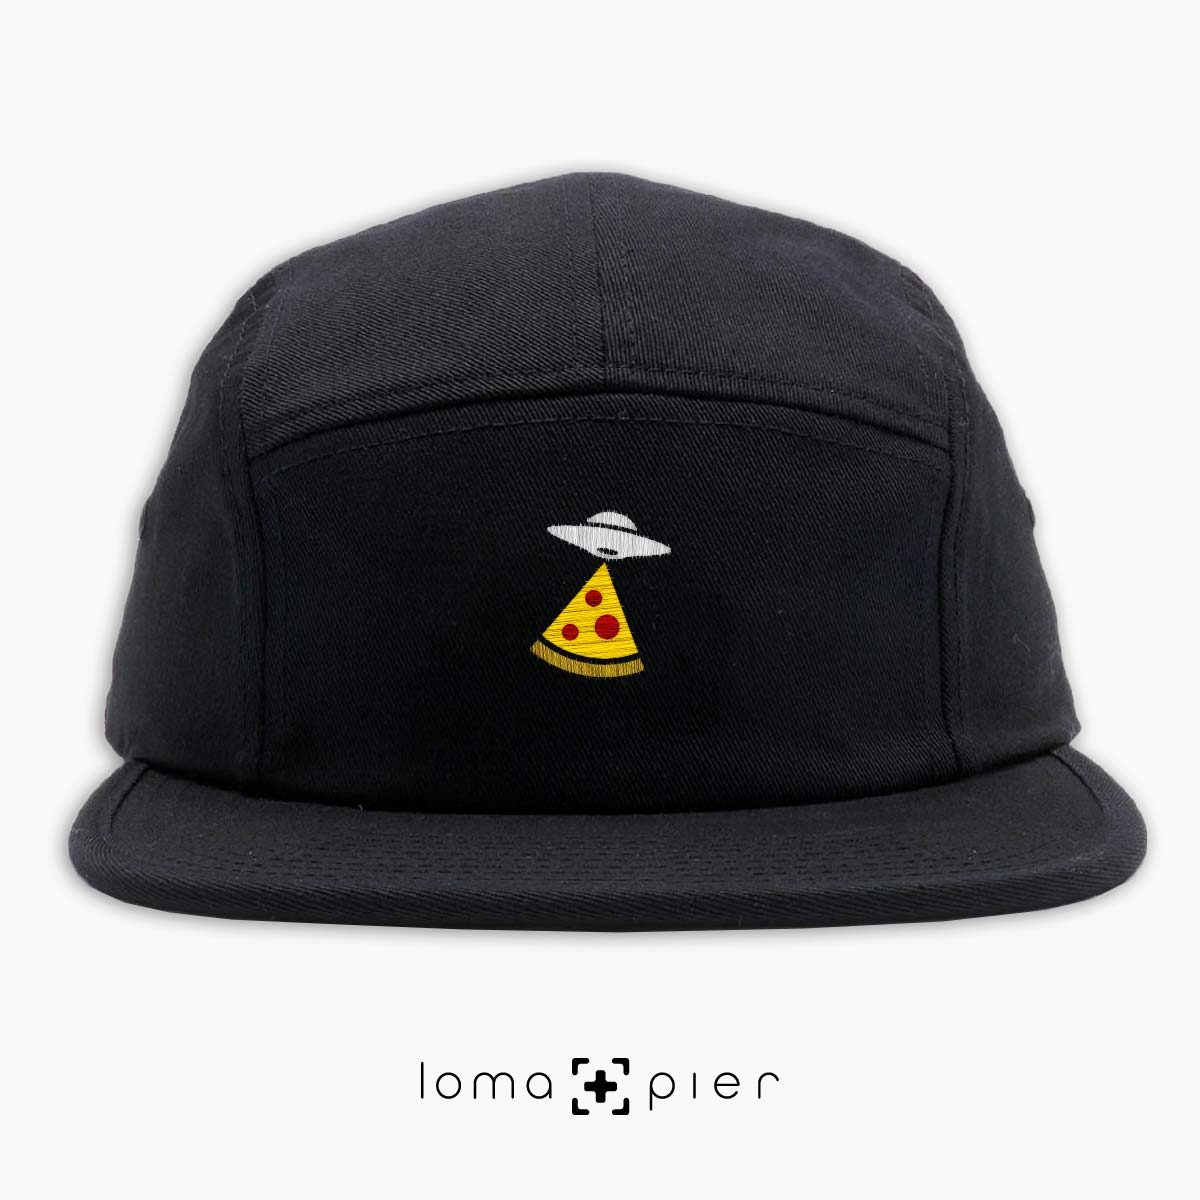 UFO PIZZA icon embroidered on a black cotton 5-panel hat with multicolor thread by loma+pier hat store